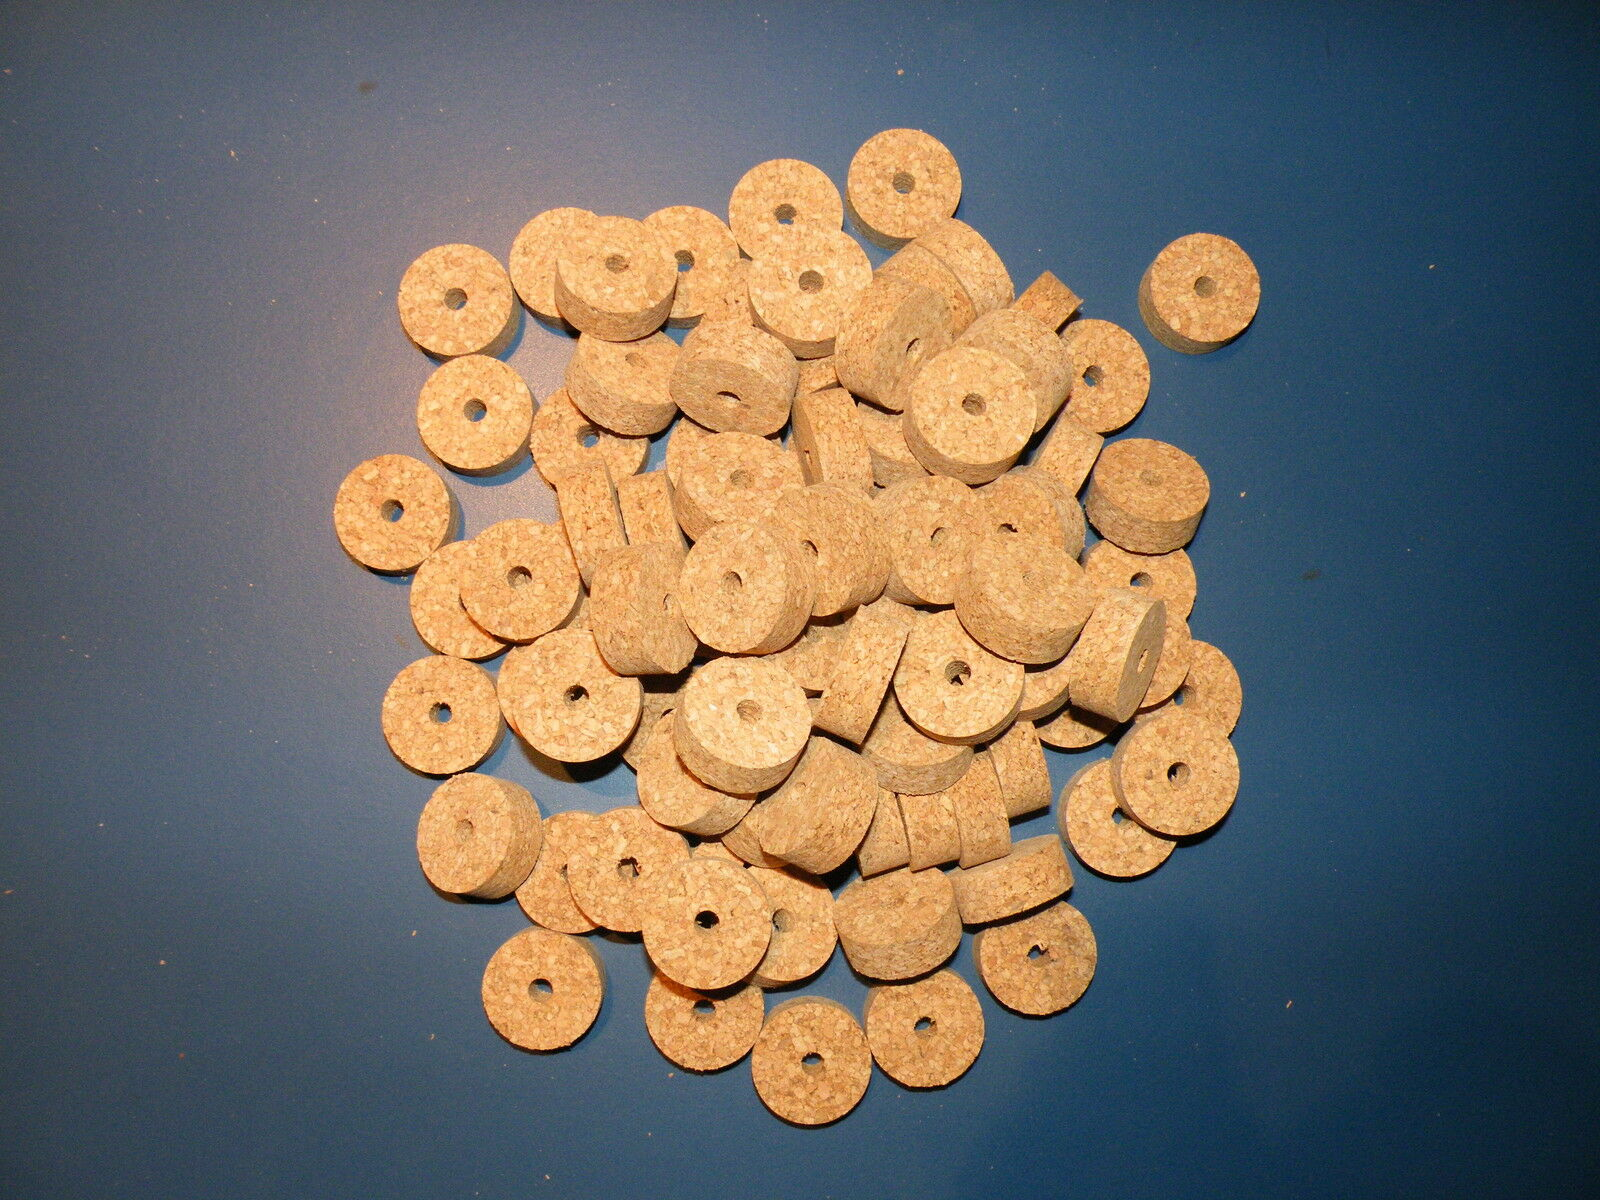 100 AGGLOMERATED  CORK RINGS 11 4 X1 2  LARGE GRAIN  BORE 1 4